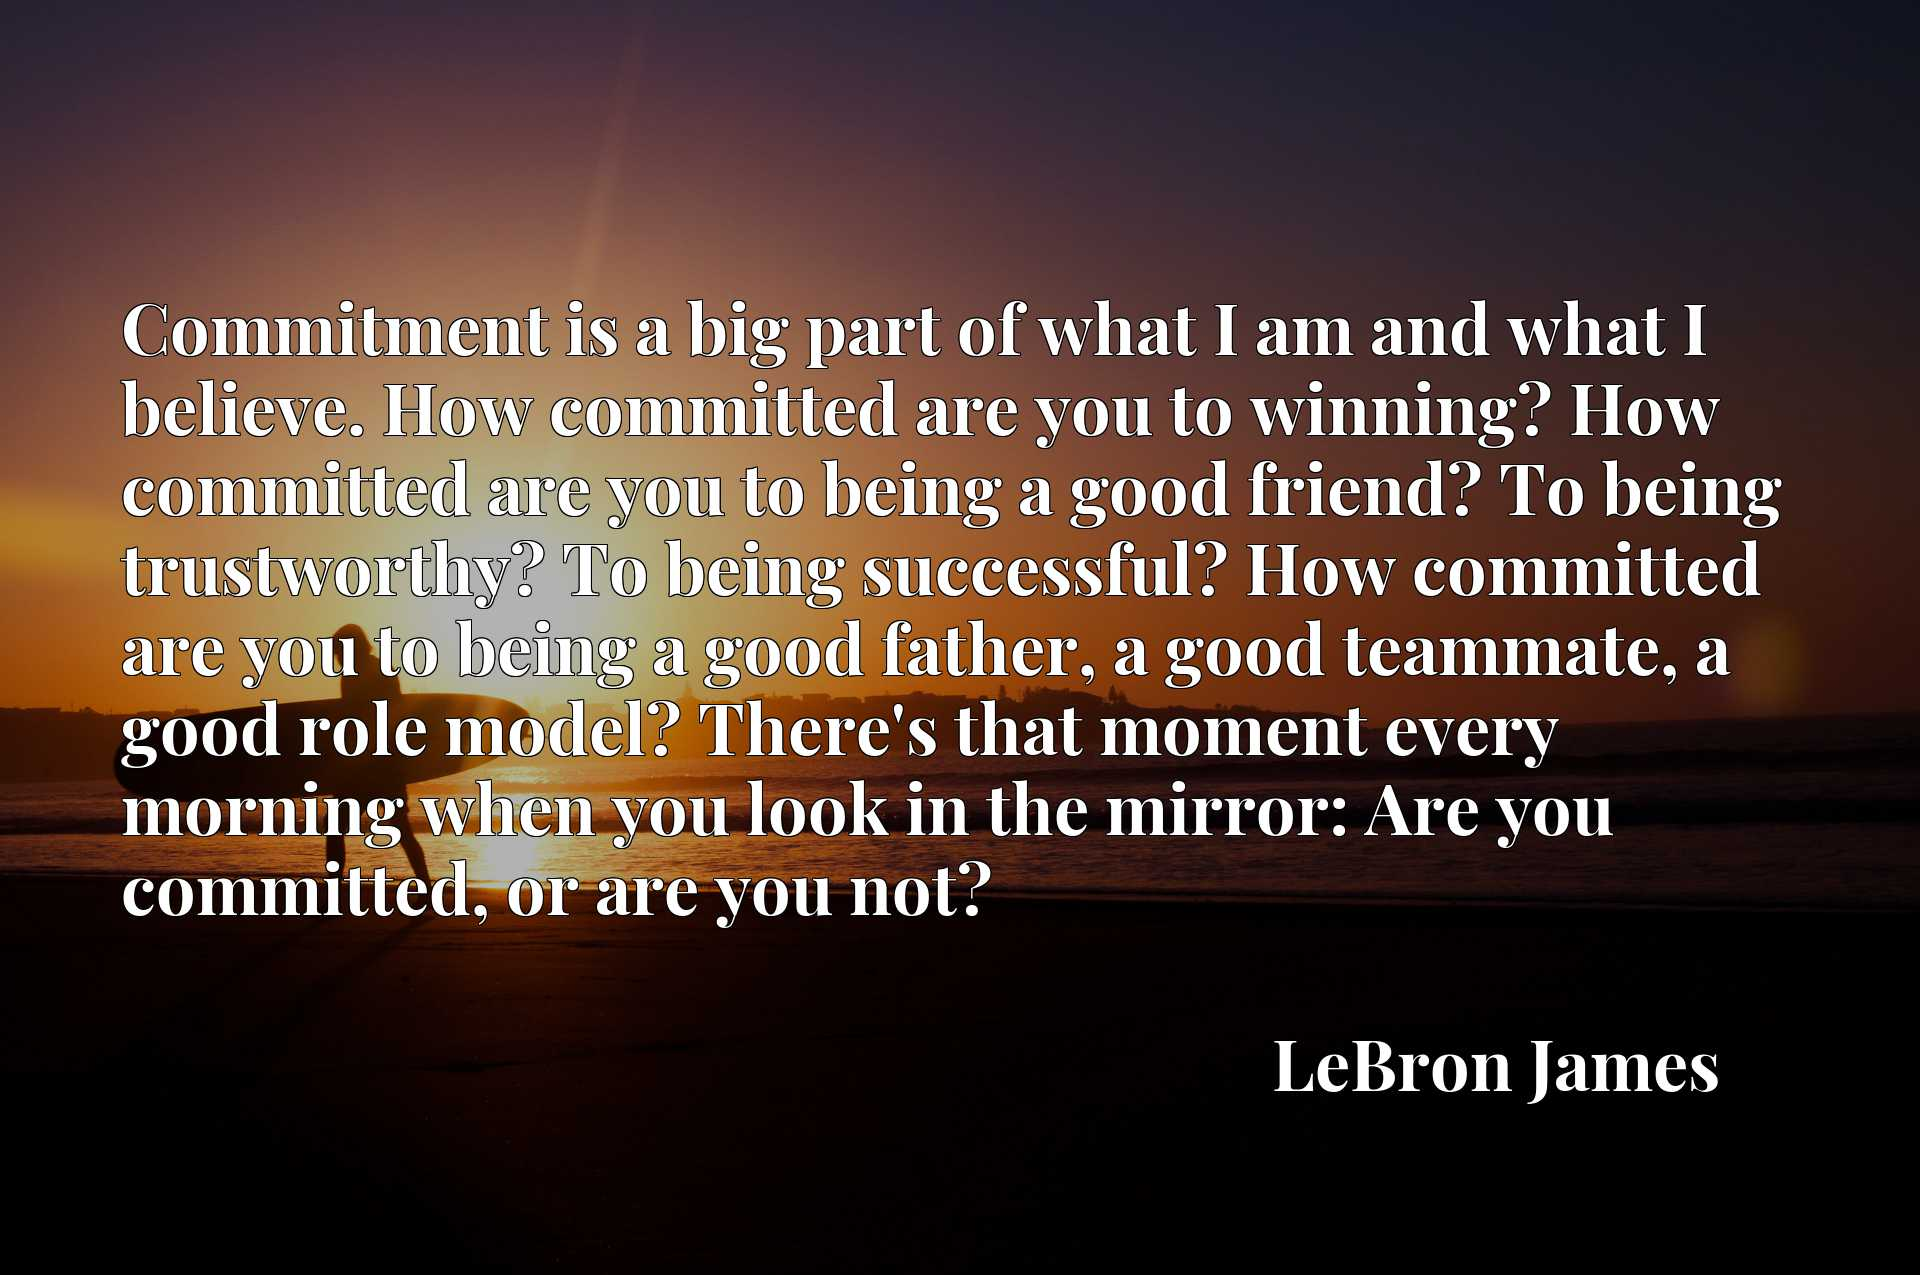 Commitment is a big part of what I am and what I believe. How committed are you to winning? How committed are you to being a good friend? To being trustworthy? To being successful? How committed are you to being a good father, a good teammate, a good role model? There's that moment every morning when you look in the mirror: Are you committed, or are you not?